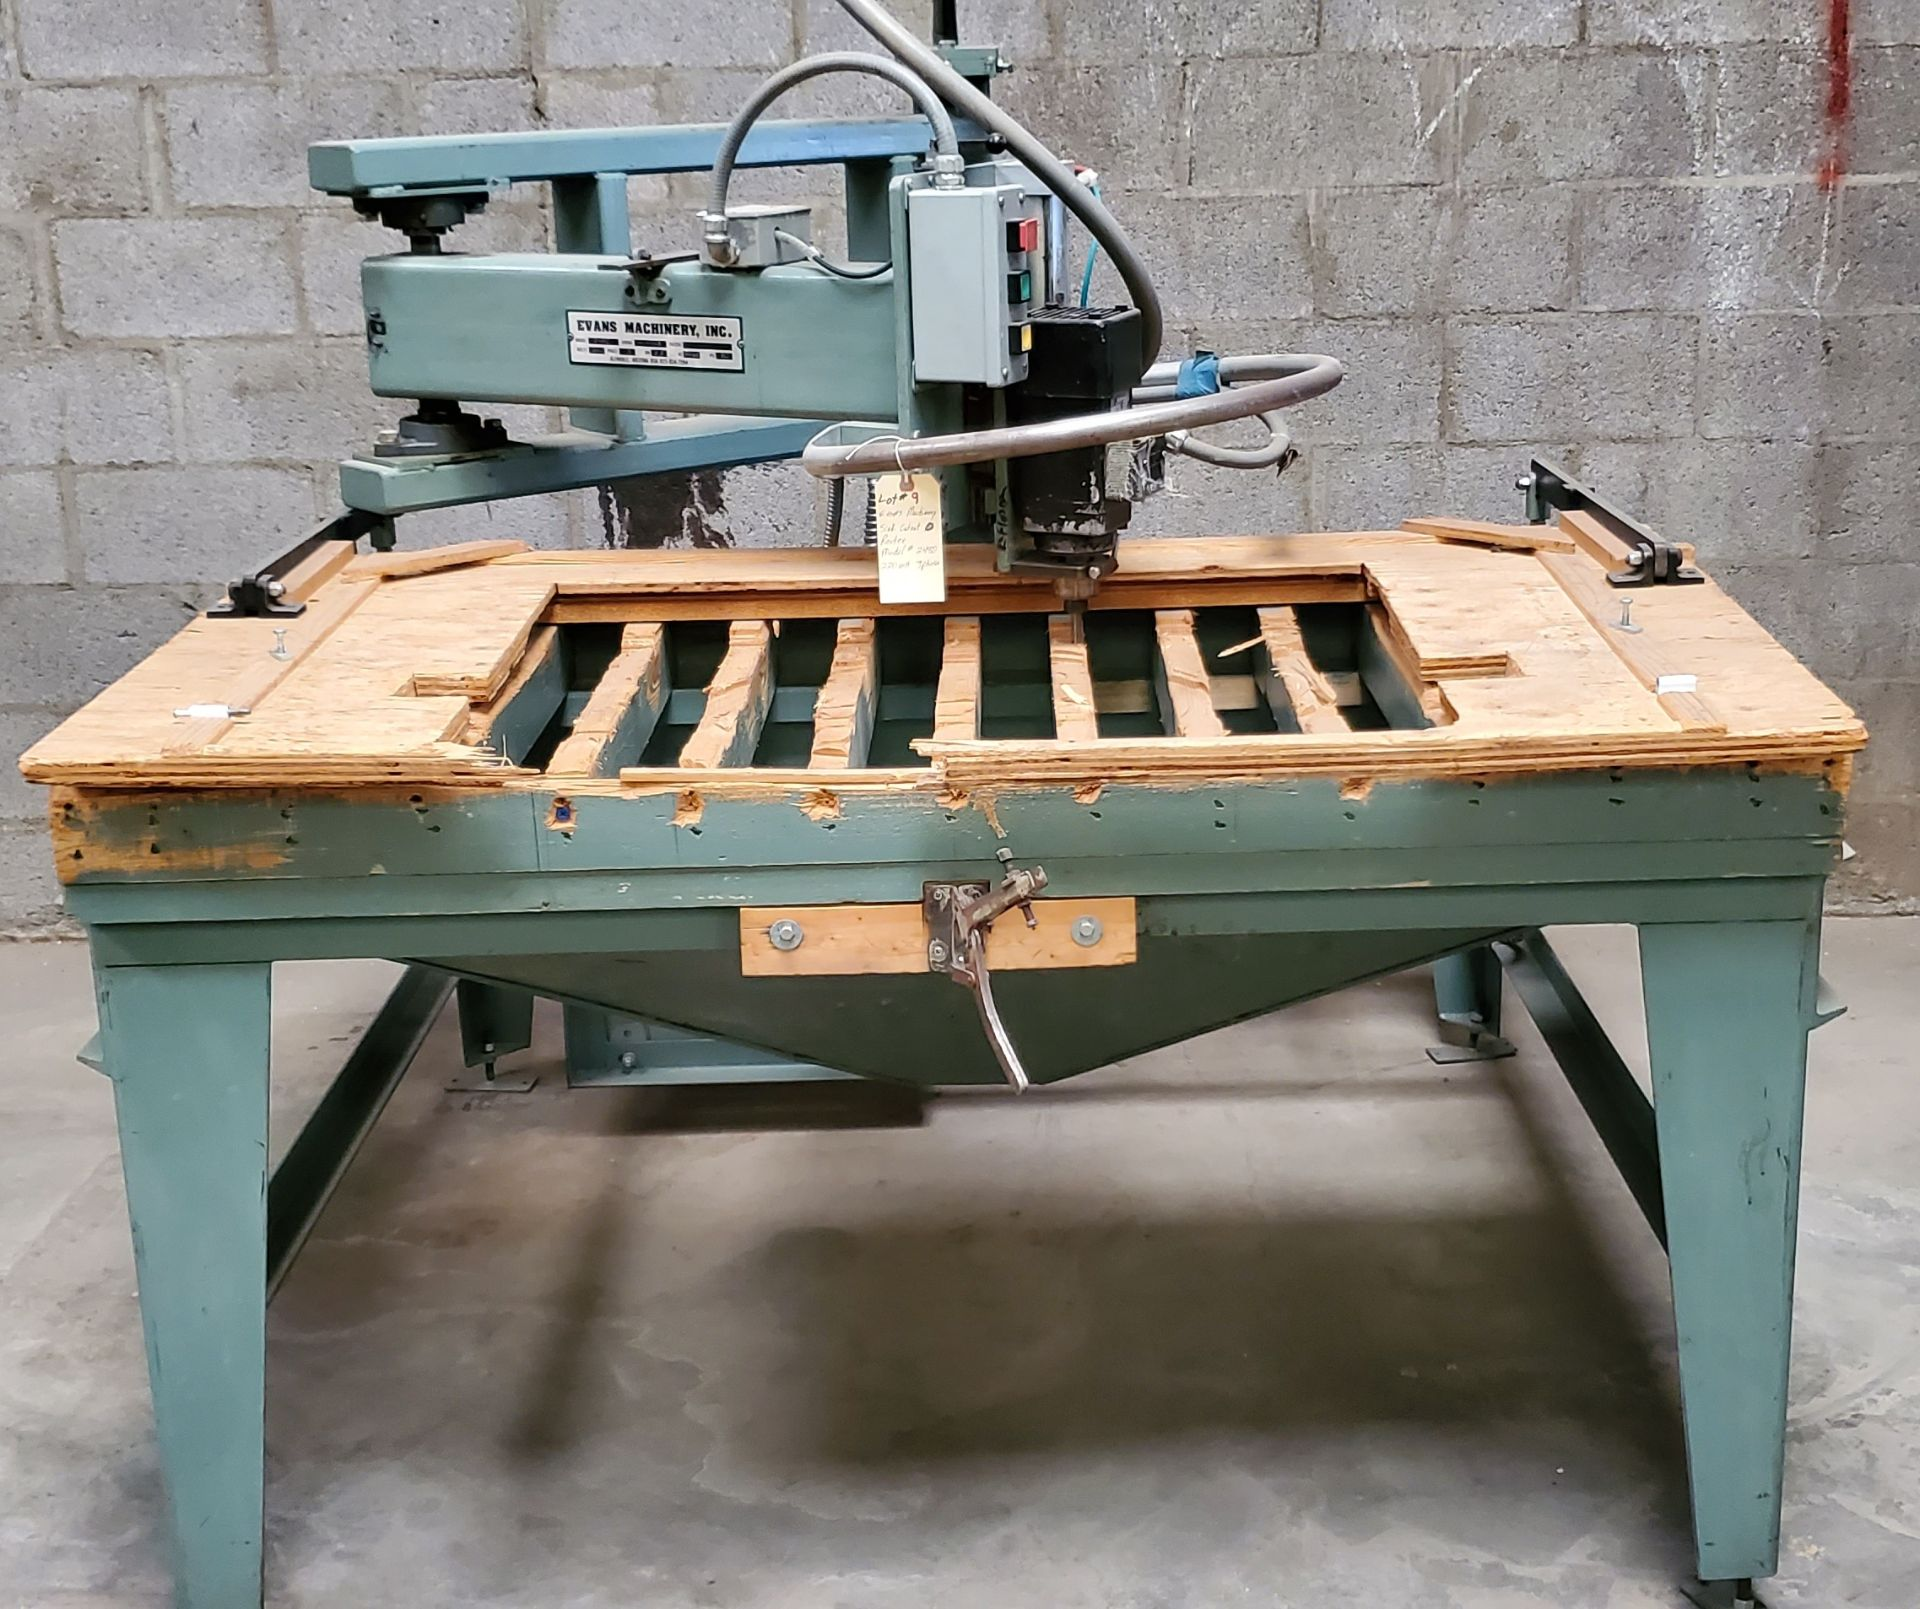 Lot 9 - Evans Machinery Sink Cutout Router, Model #2480, 220 Volts 3 Phase Motor